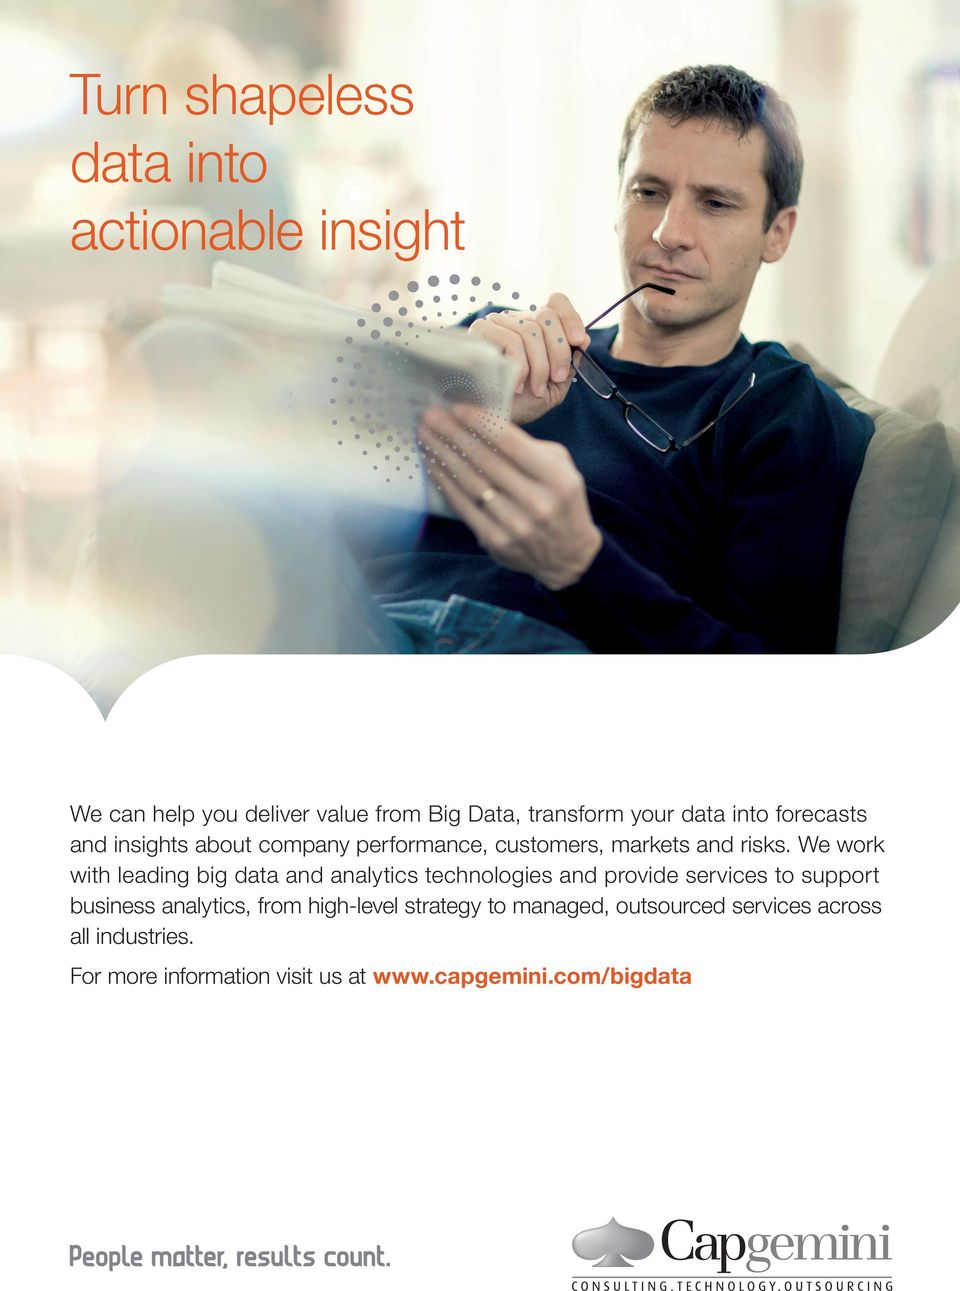 We work with leadig big data ad aalytics techologies ad provide services to support busiess aalytics,